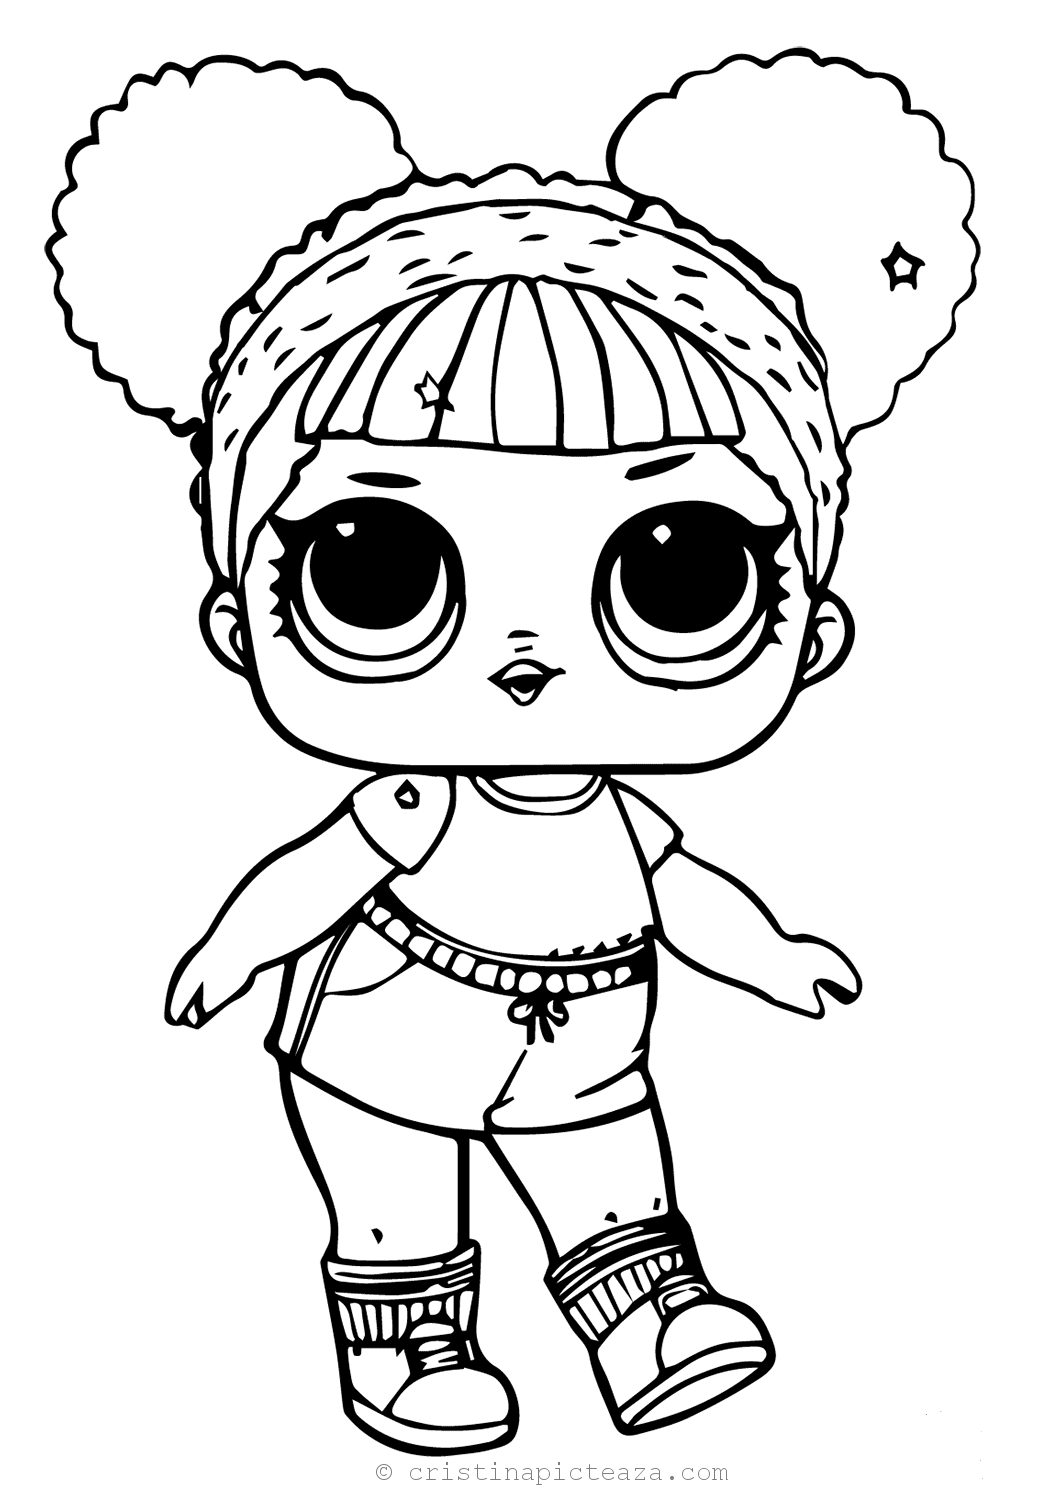 doll colouring pages lol coloring pages lol dolls for coloring and painting doll colouring pages